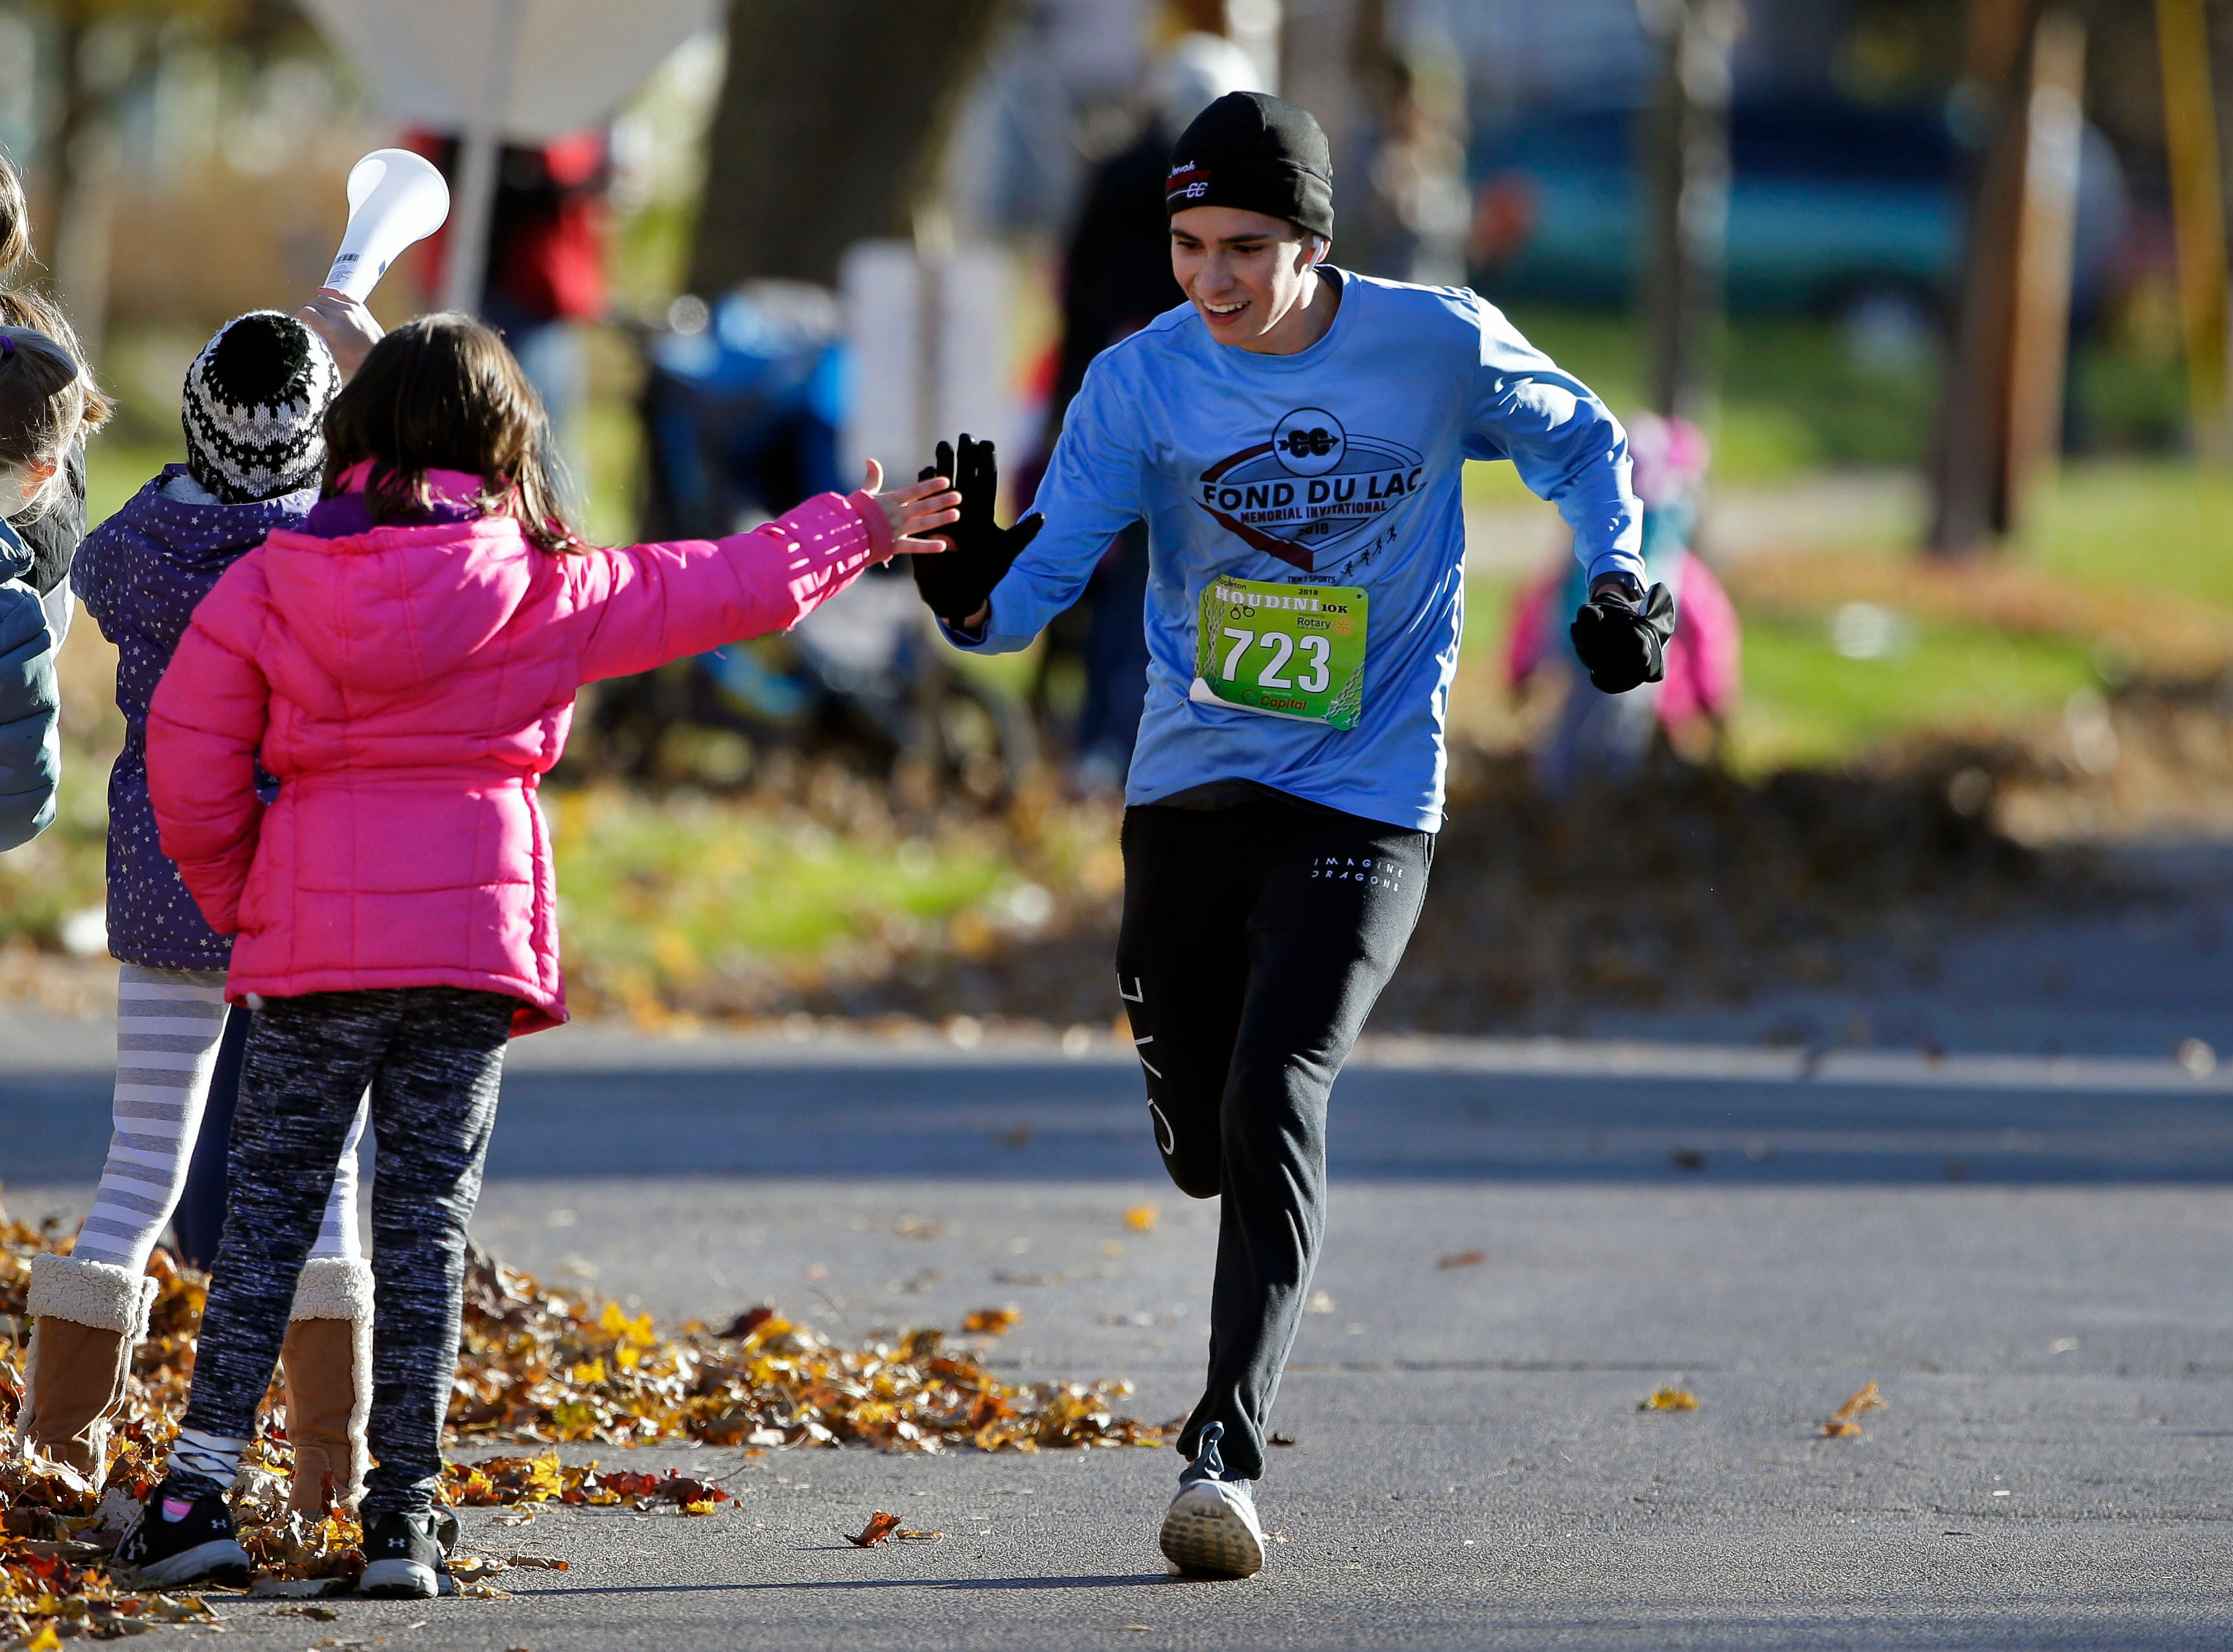 Josh Ryan gets congratulations near the finish as the 4th annual Appleton Houdini 10K takes place Saturday, November 3, 2018, in Appleton, Wis.